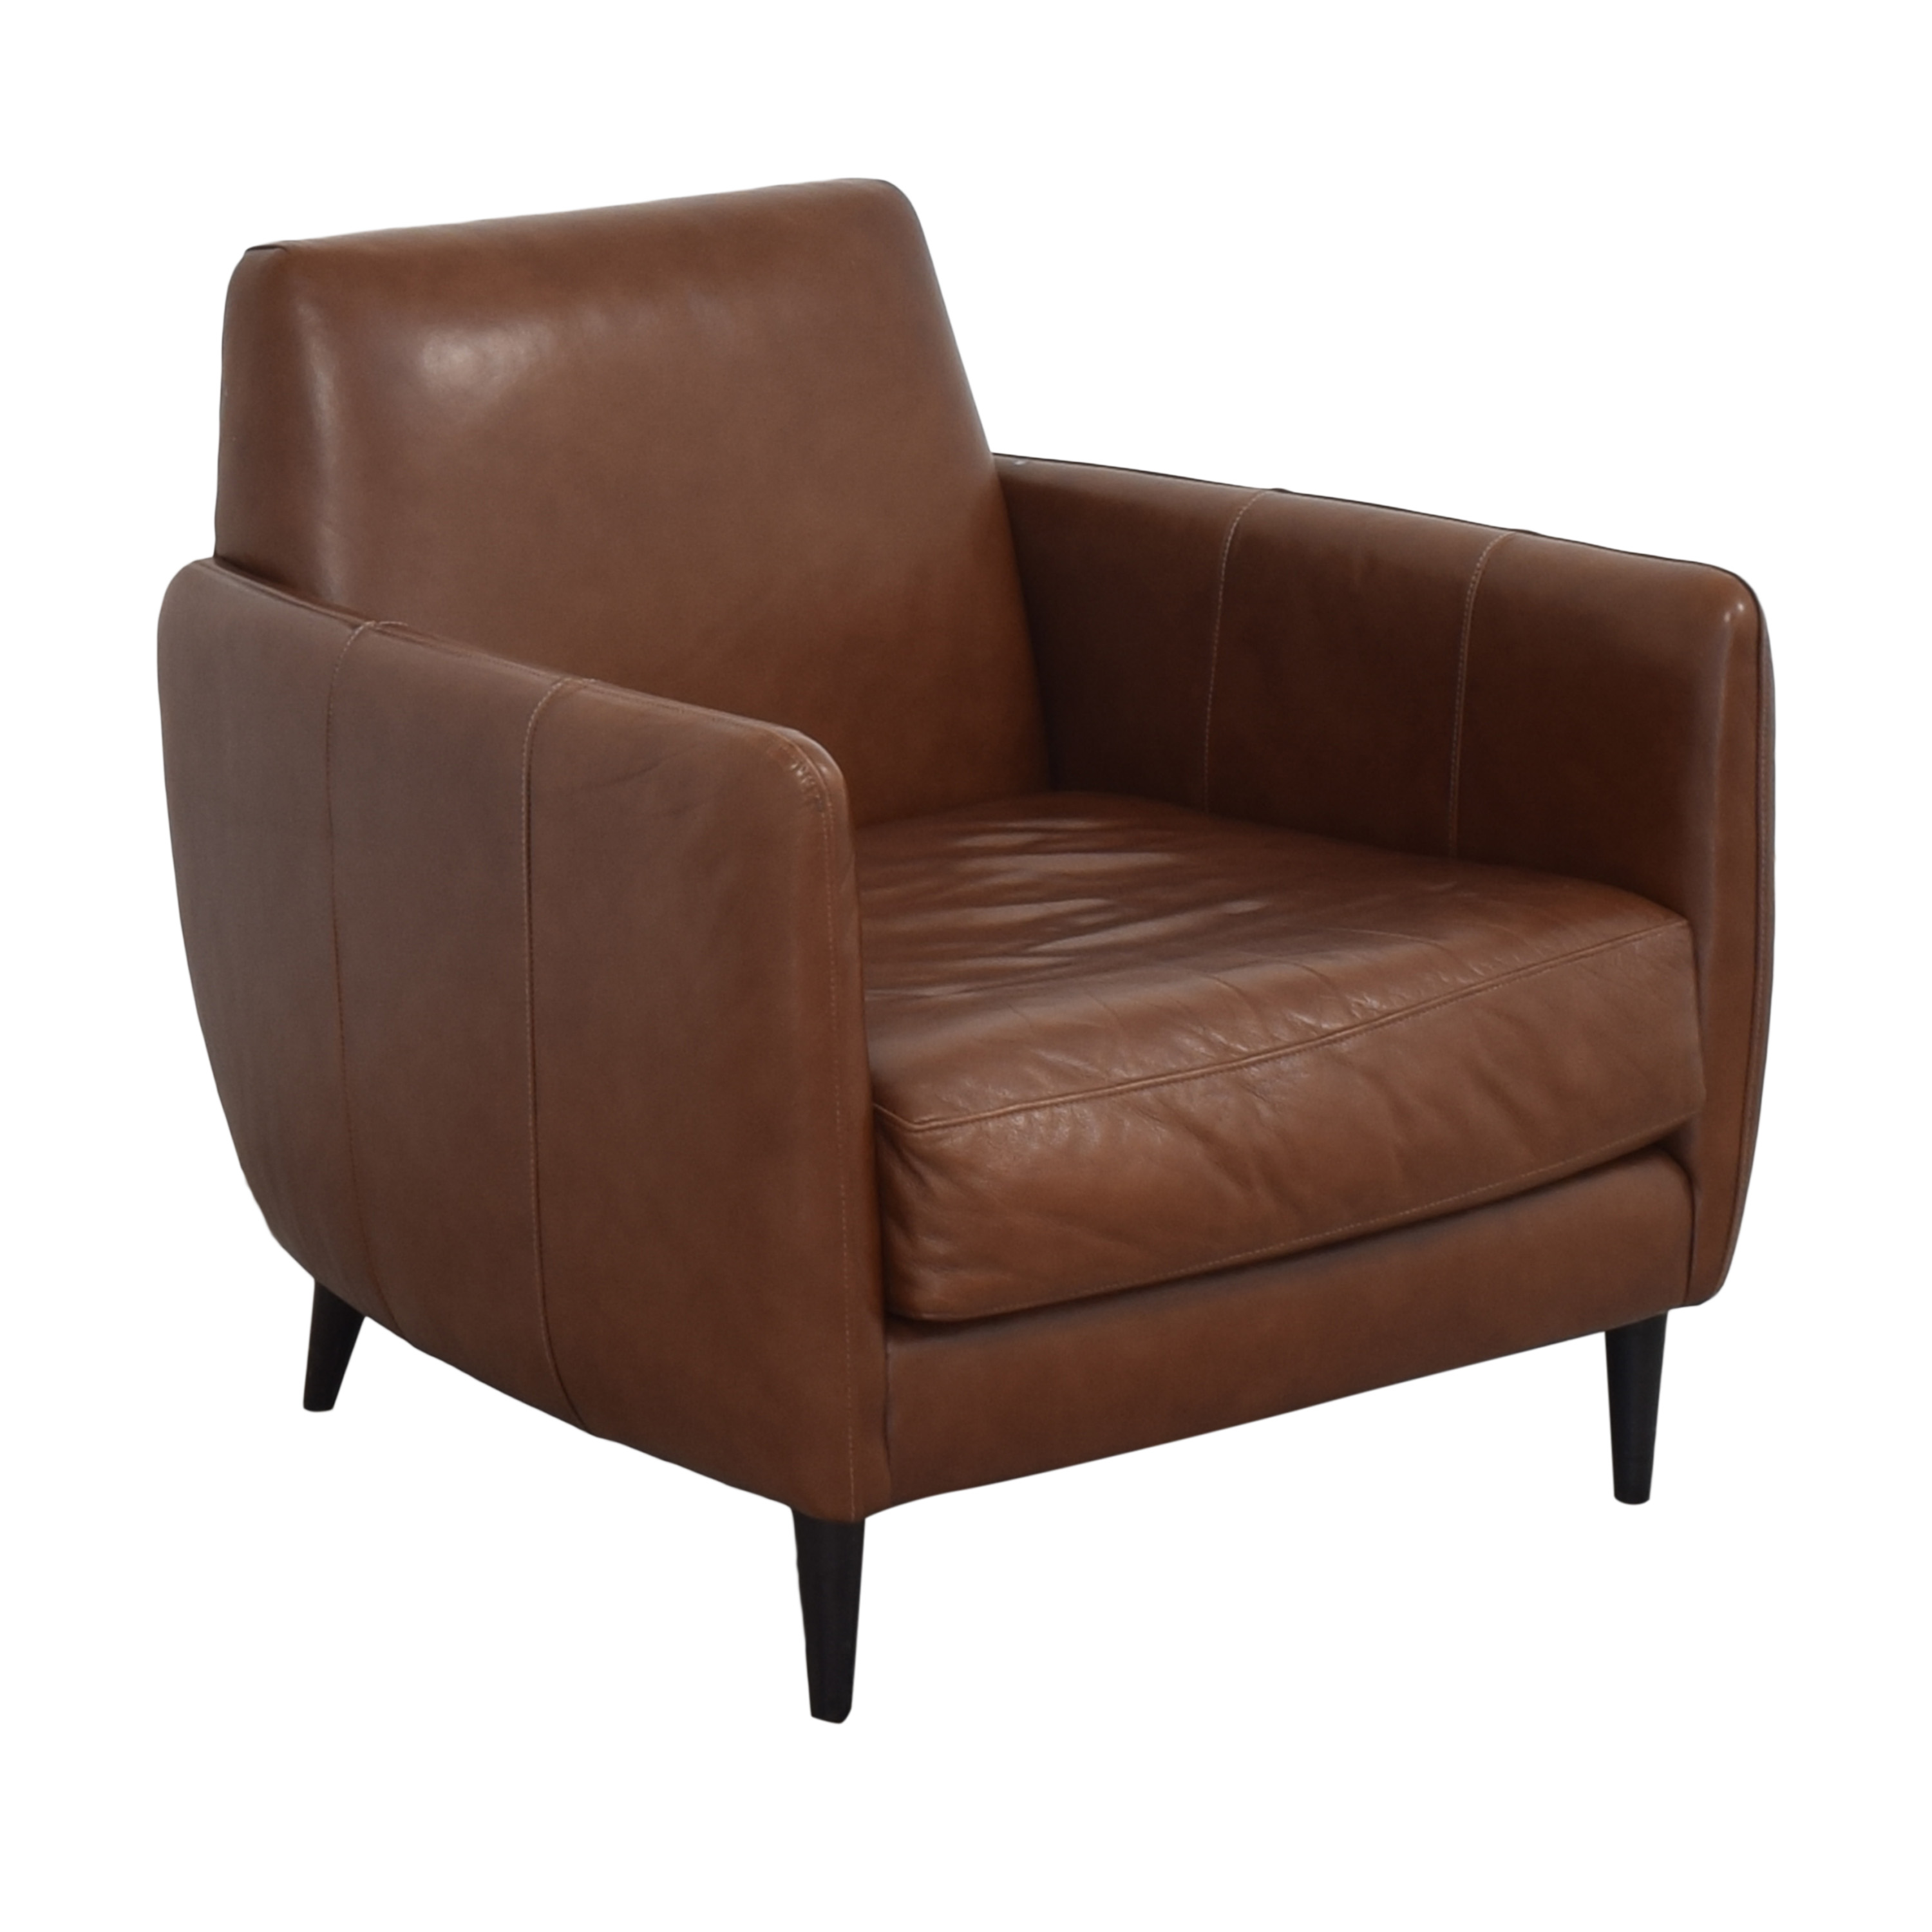 buy CB2 Parlour Accent Chair CB2 Chairs